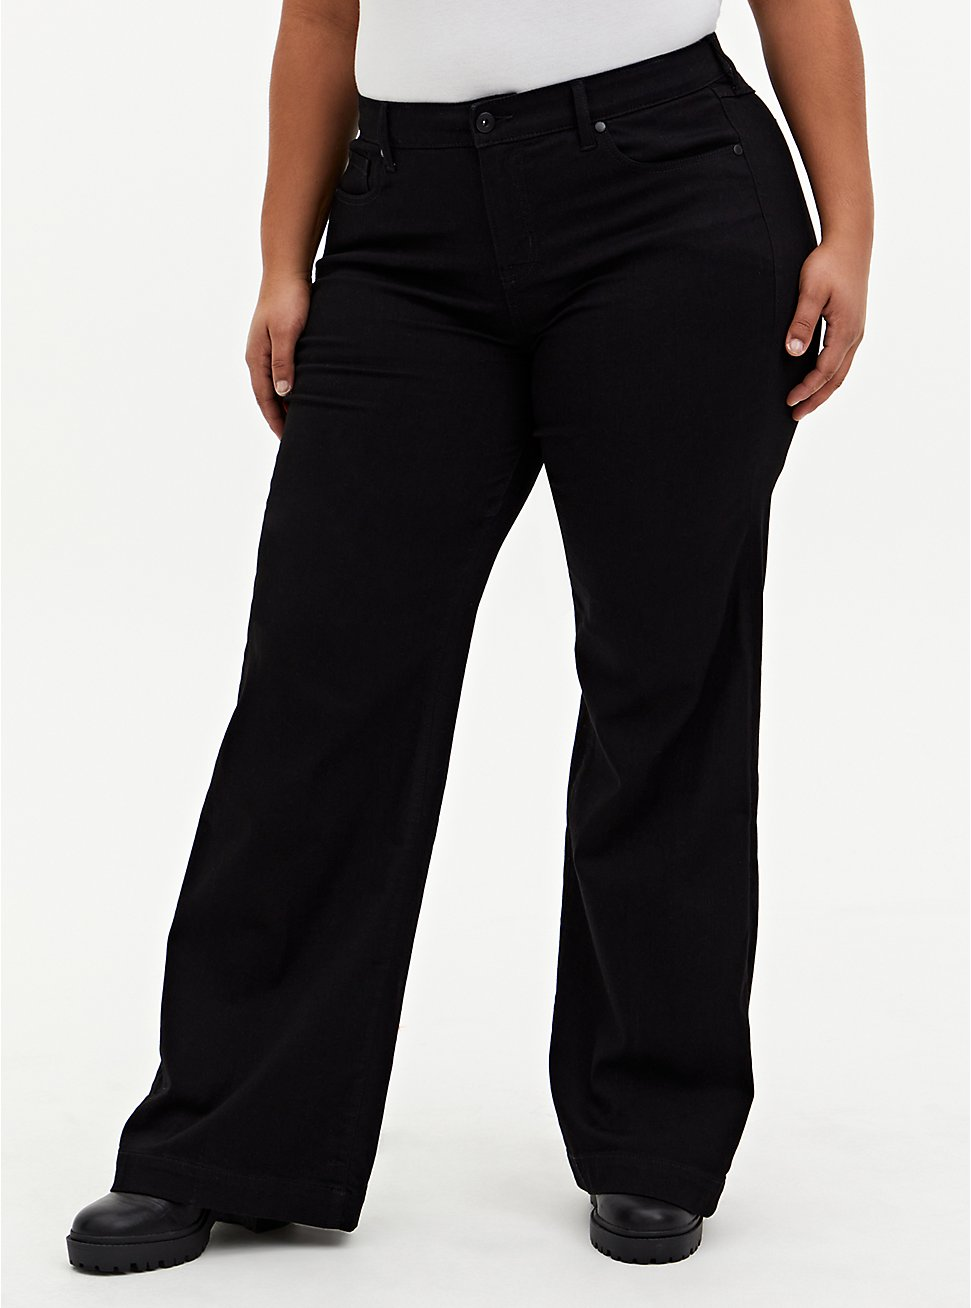 Plus Size High Rise Wide Leg Jean - Super Soft Black, DEEP BLACK, hi-res